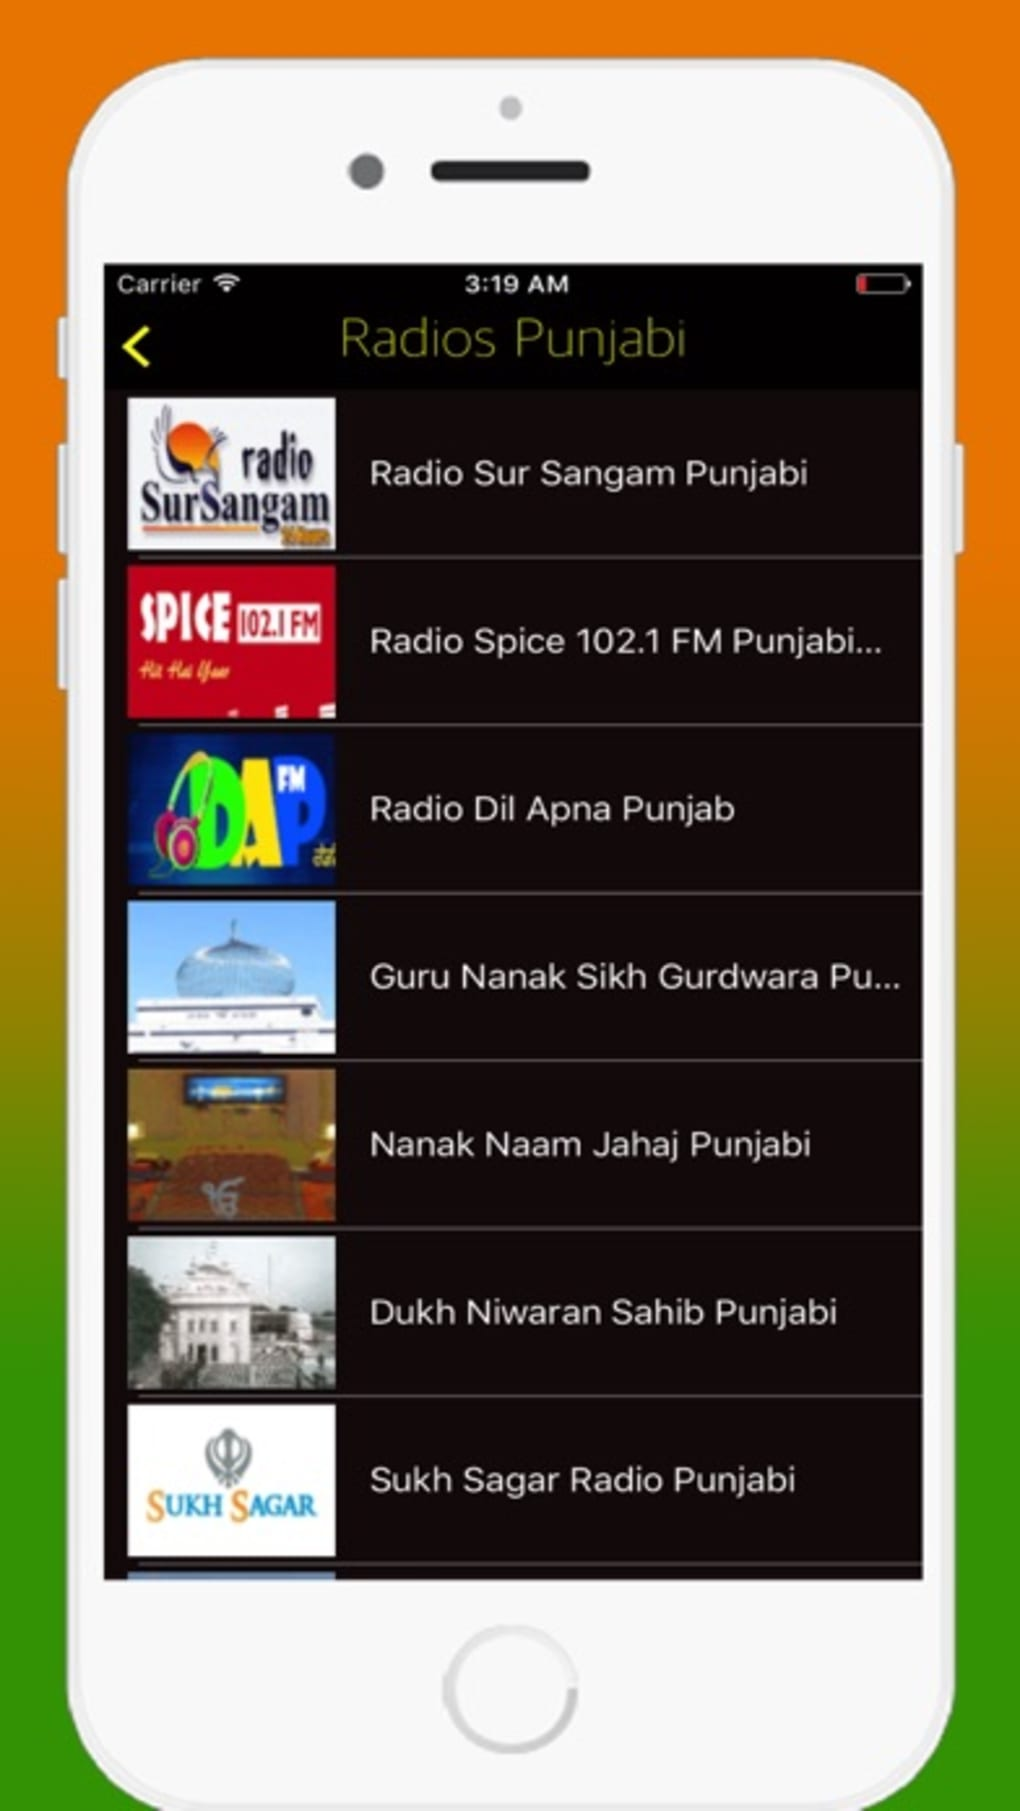 Radio India FM AM - Live Radio Stations Online for iPhone